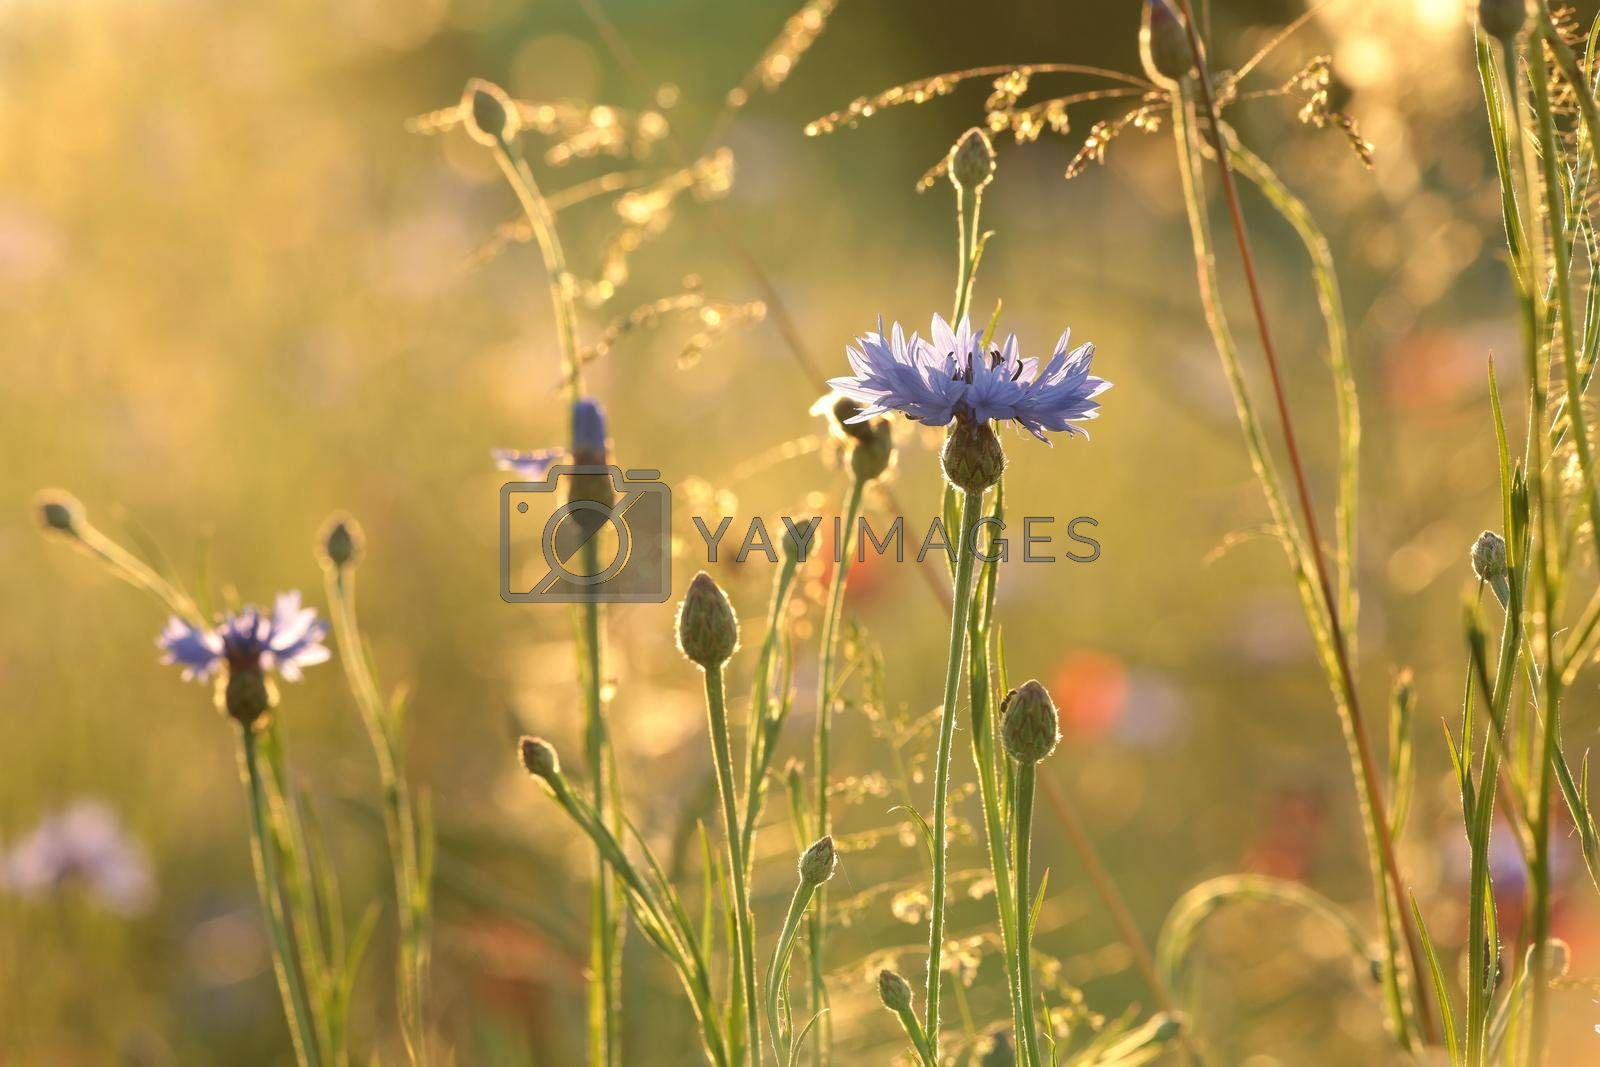 Cornflowers in the field at sunrise.